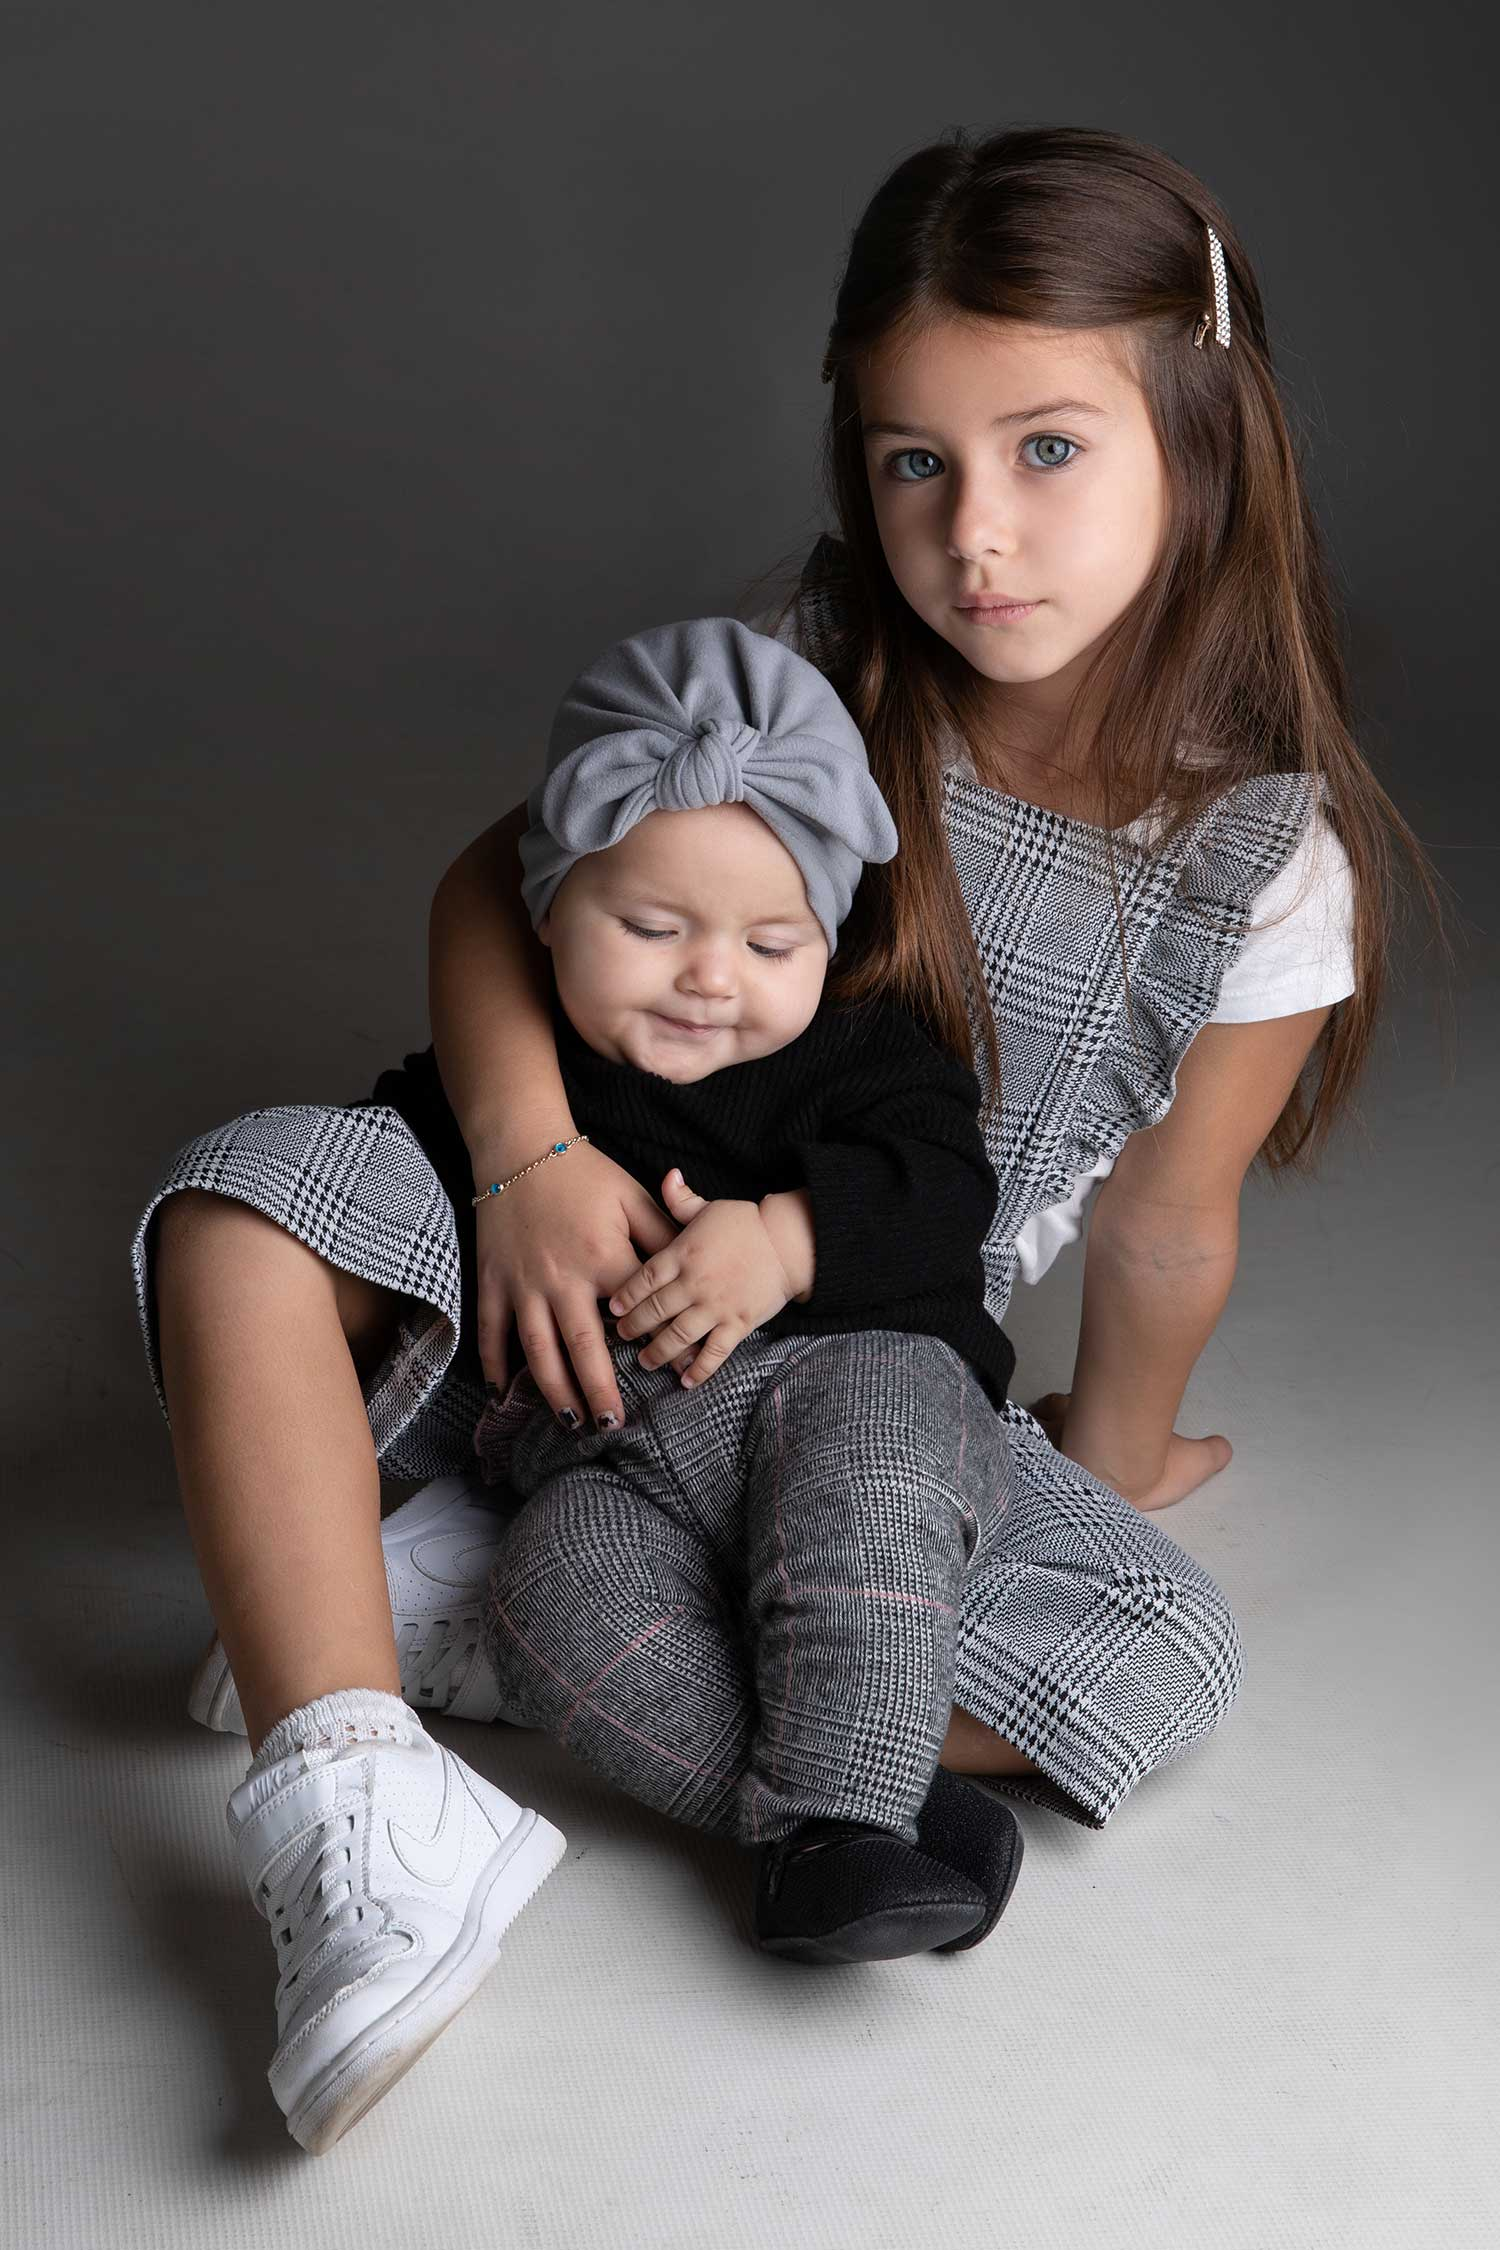 Studio family portraits - Special bond between sisters